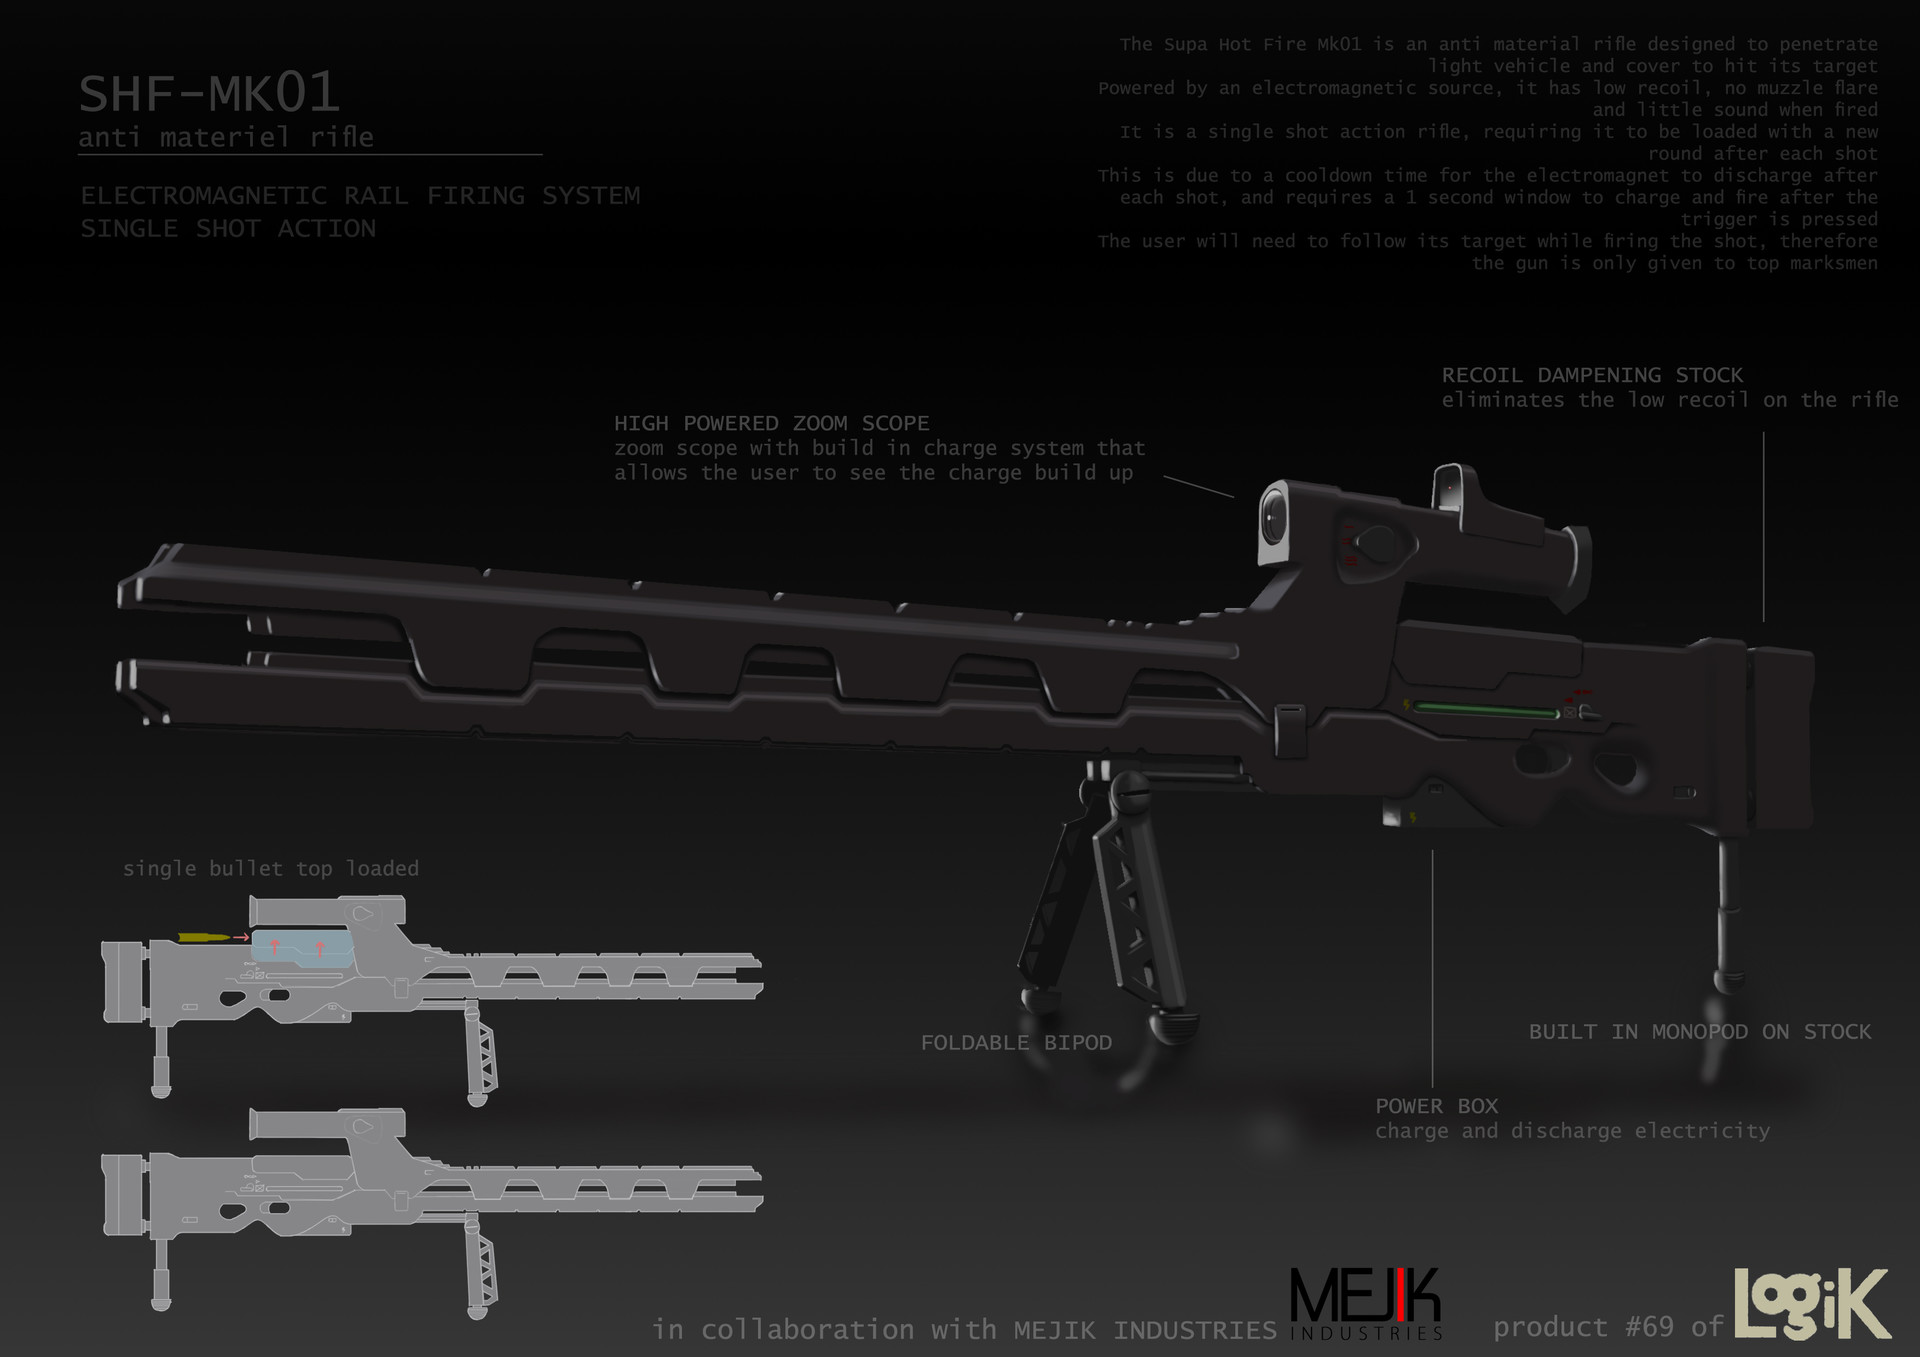 Anti Materiel Rifle artstation - anti materiel rifle, daryl choo